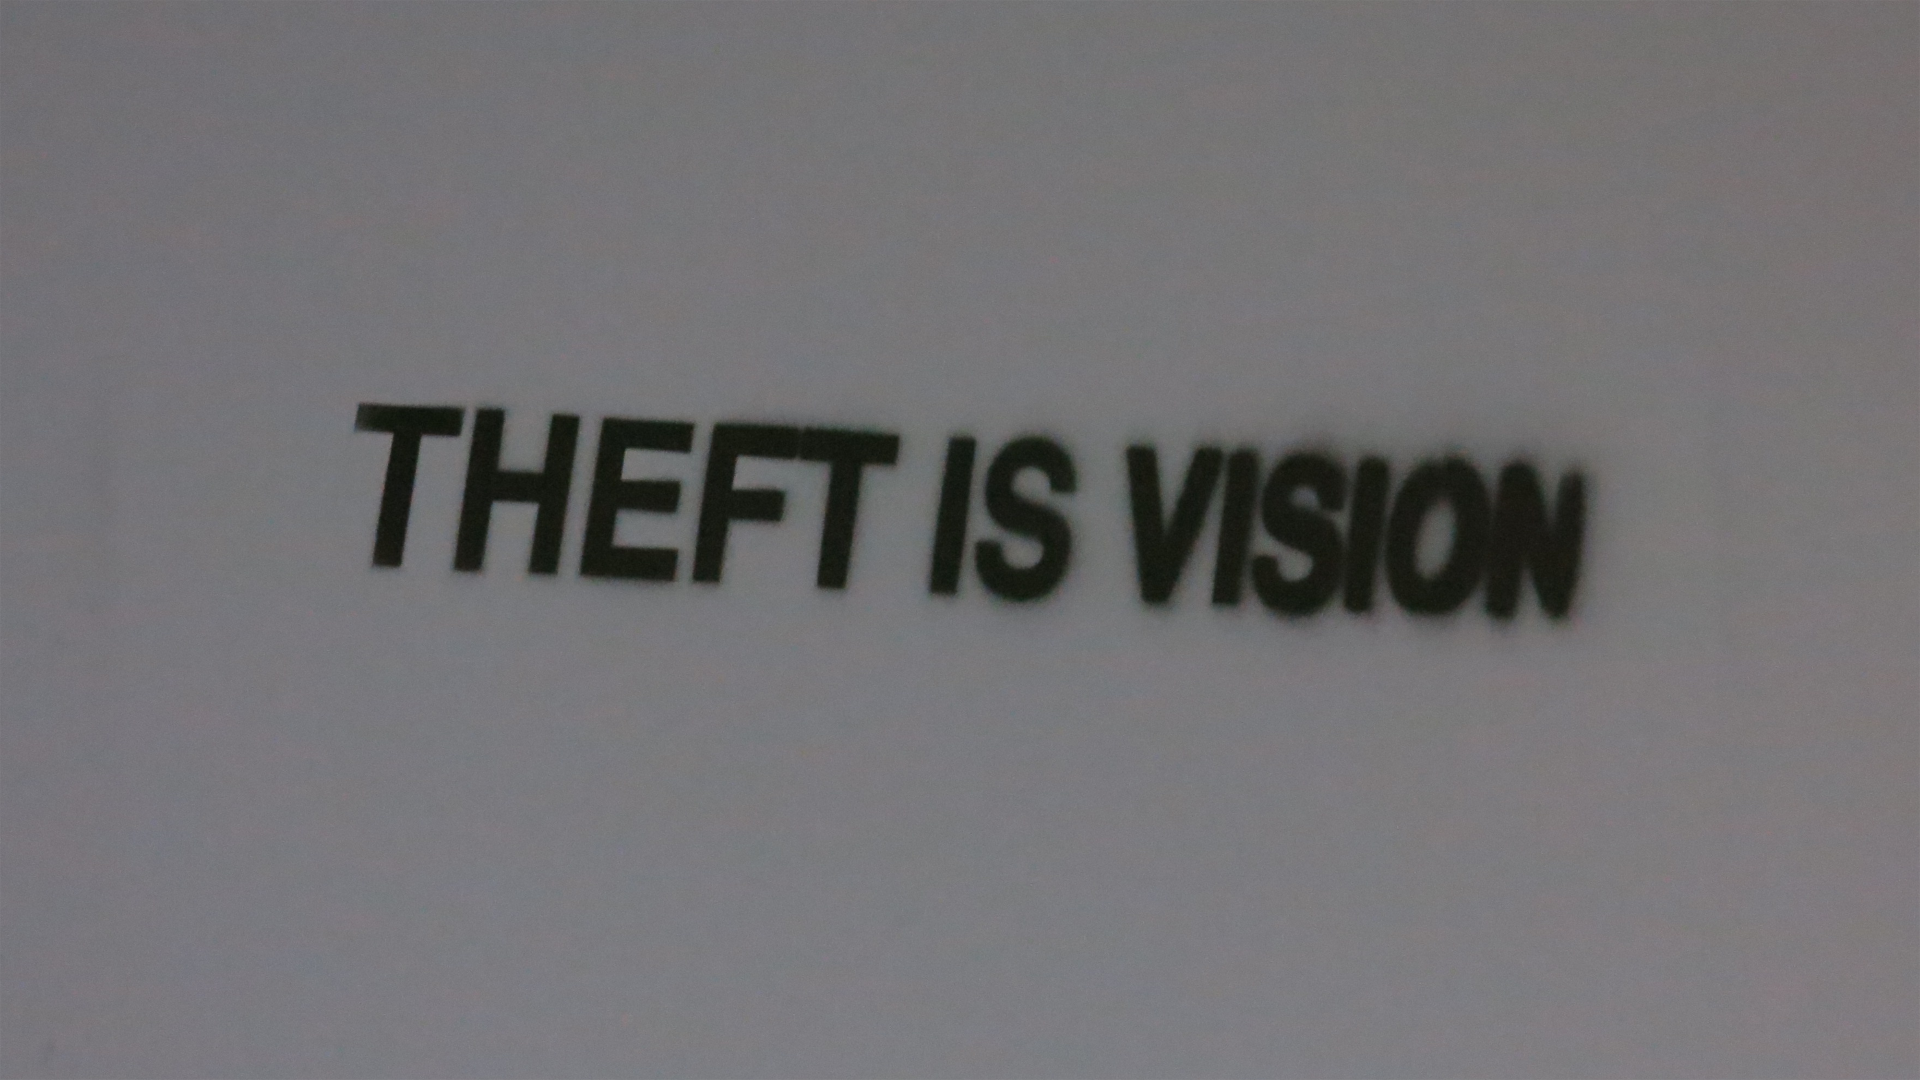 Matthias Wermke - Theft is Vision